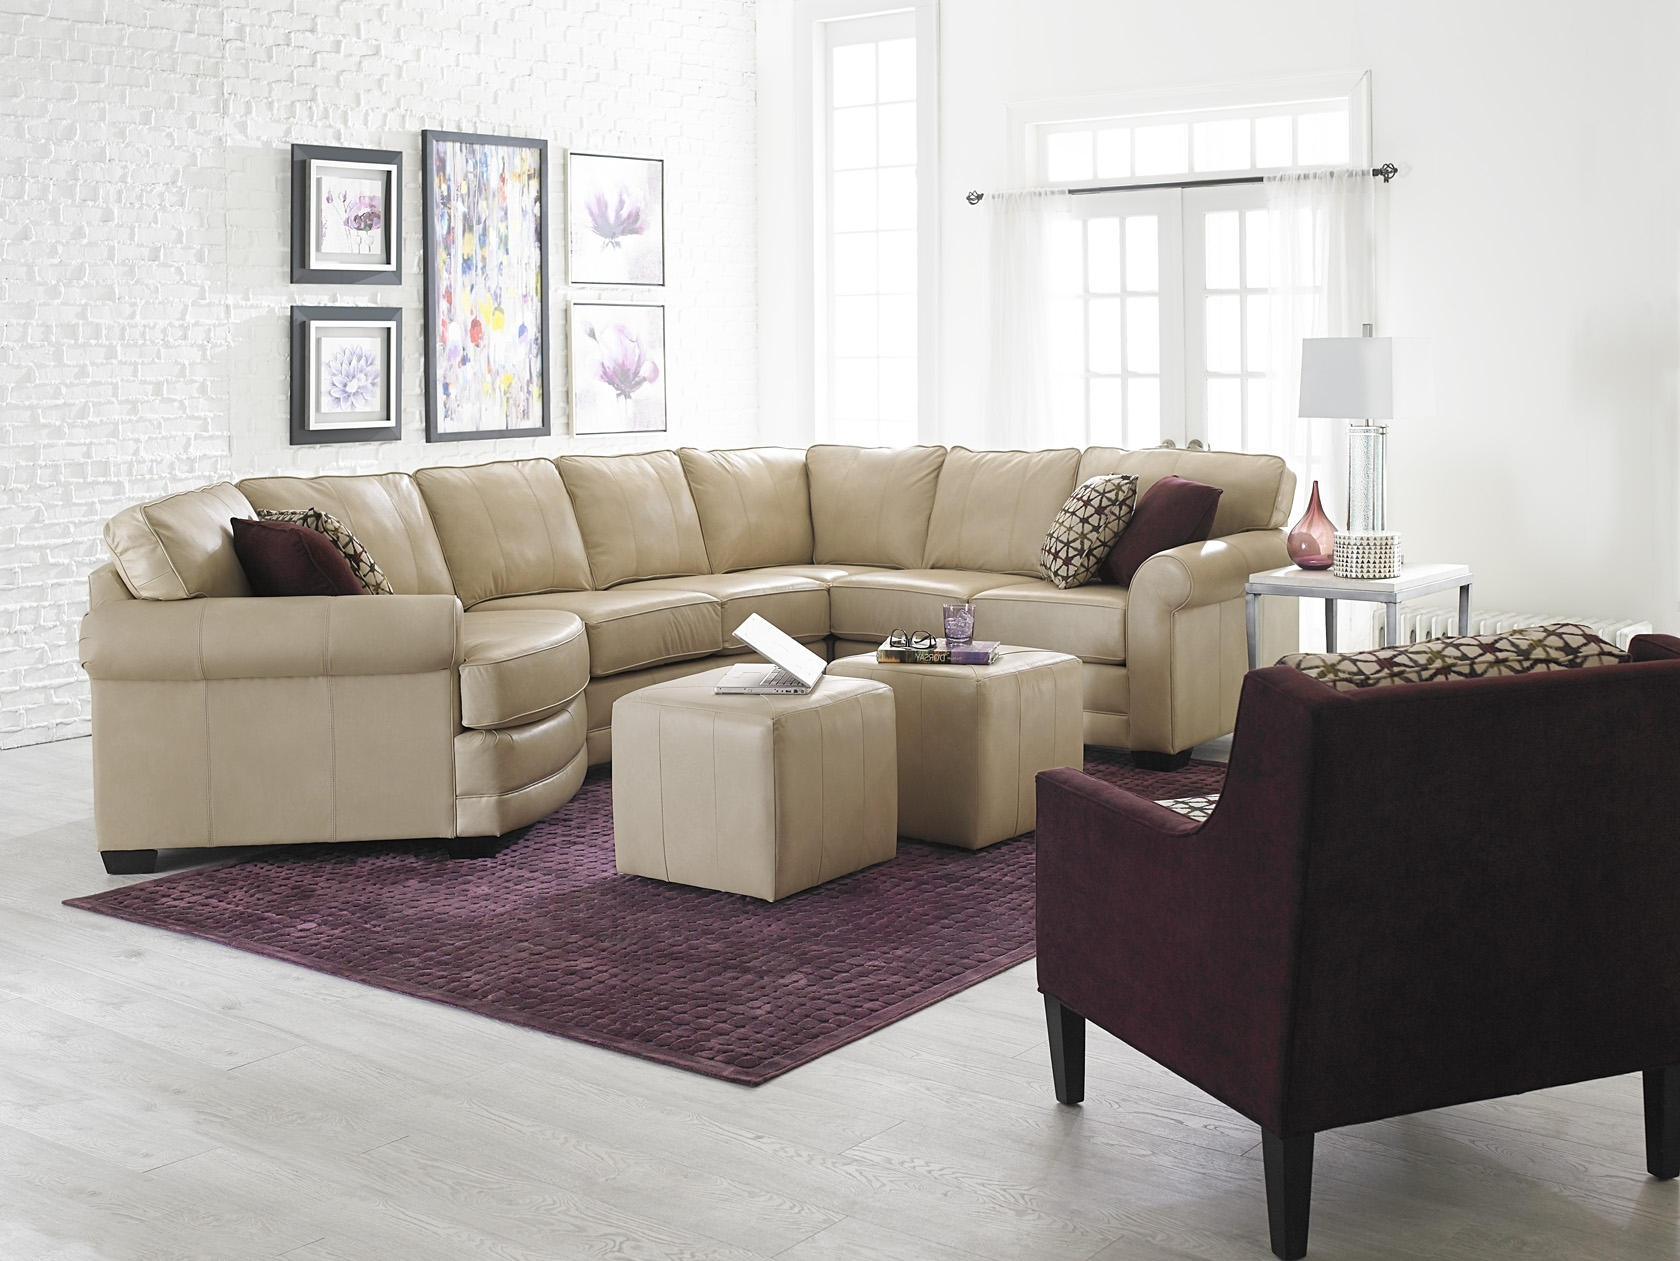 England Sectional Sofas Regarding Famous England Furniture Leather Sectional With Cuddler Seat (View 9 of 15)